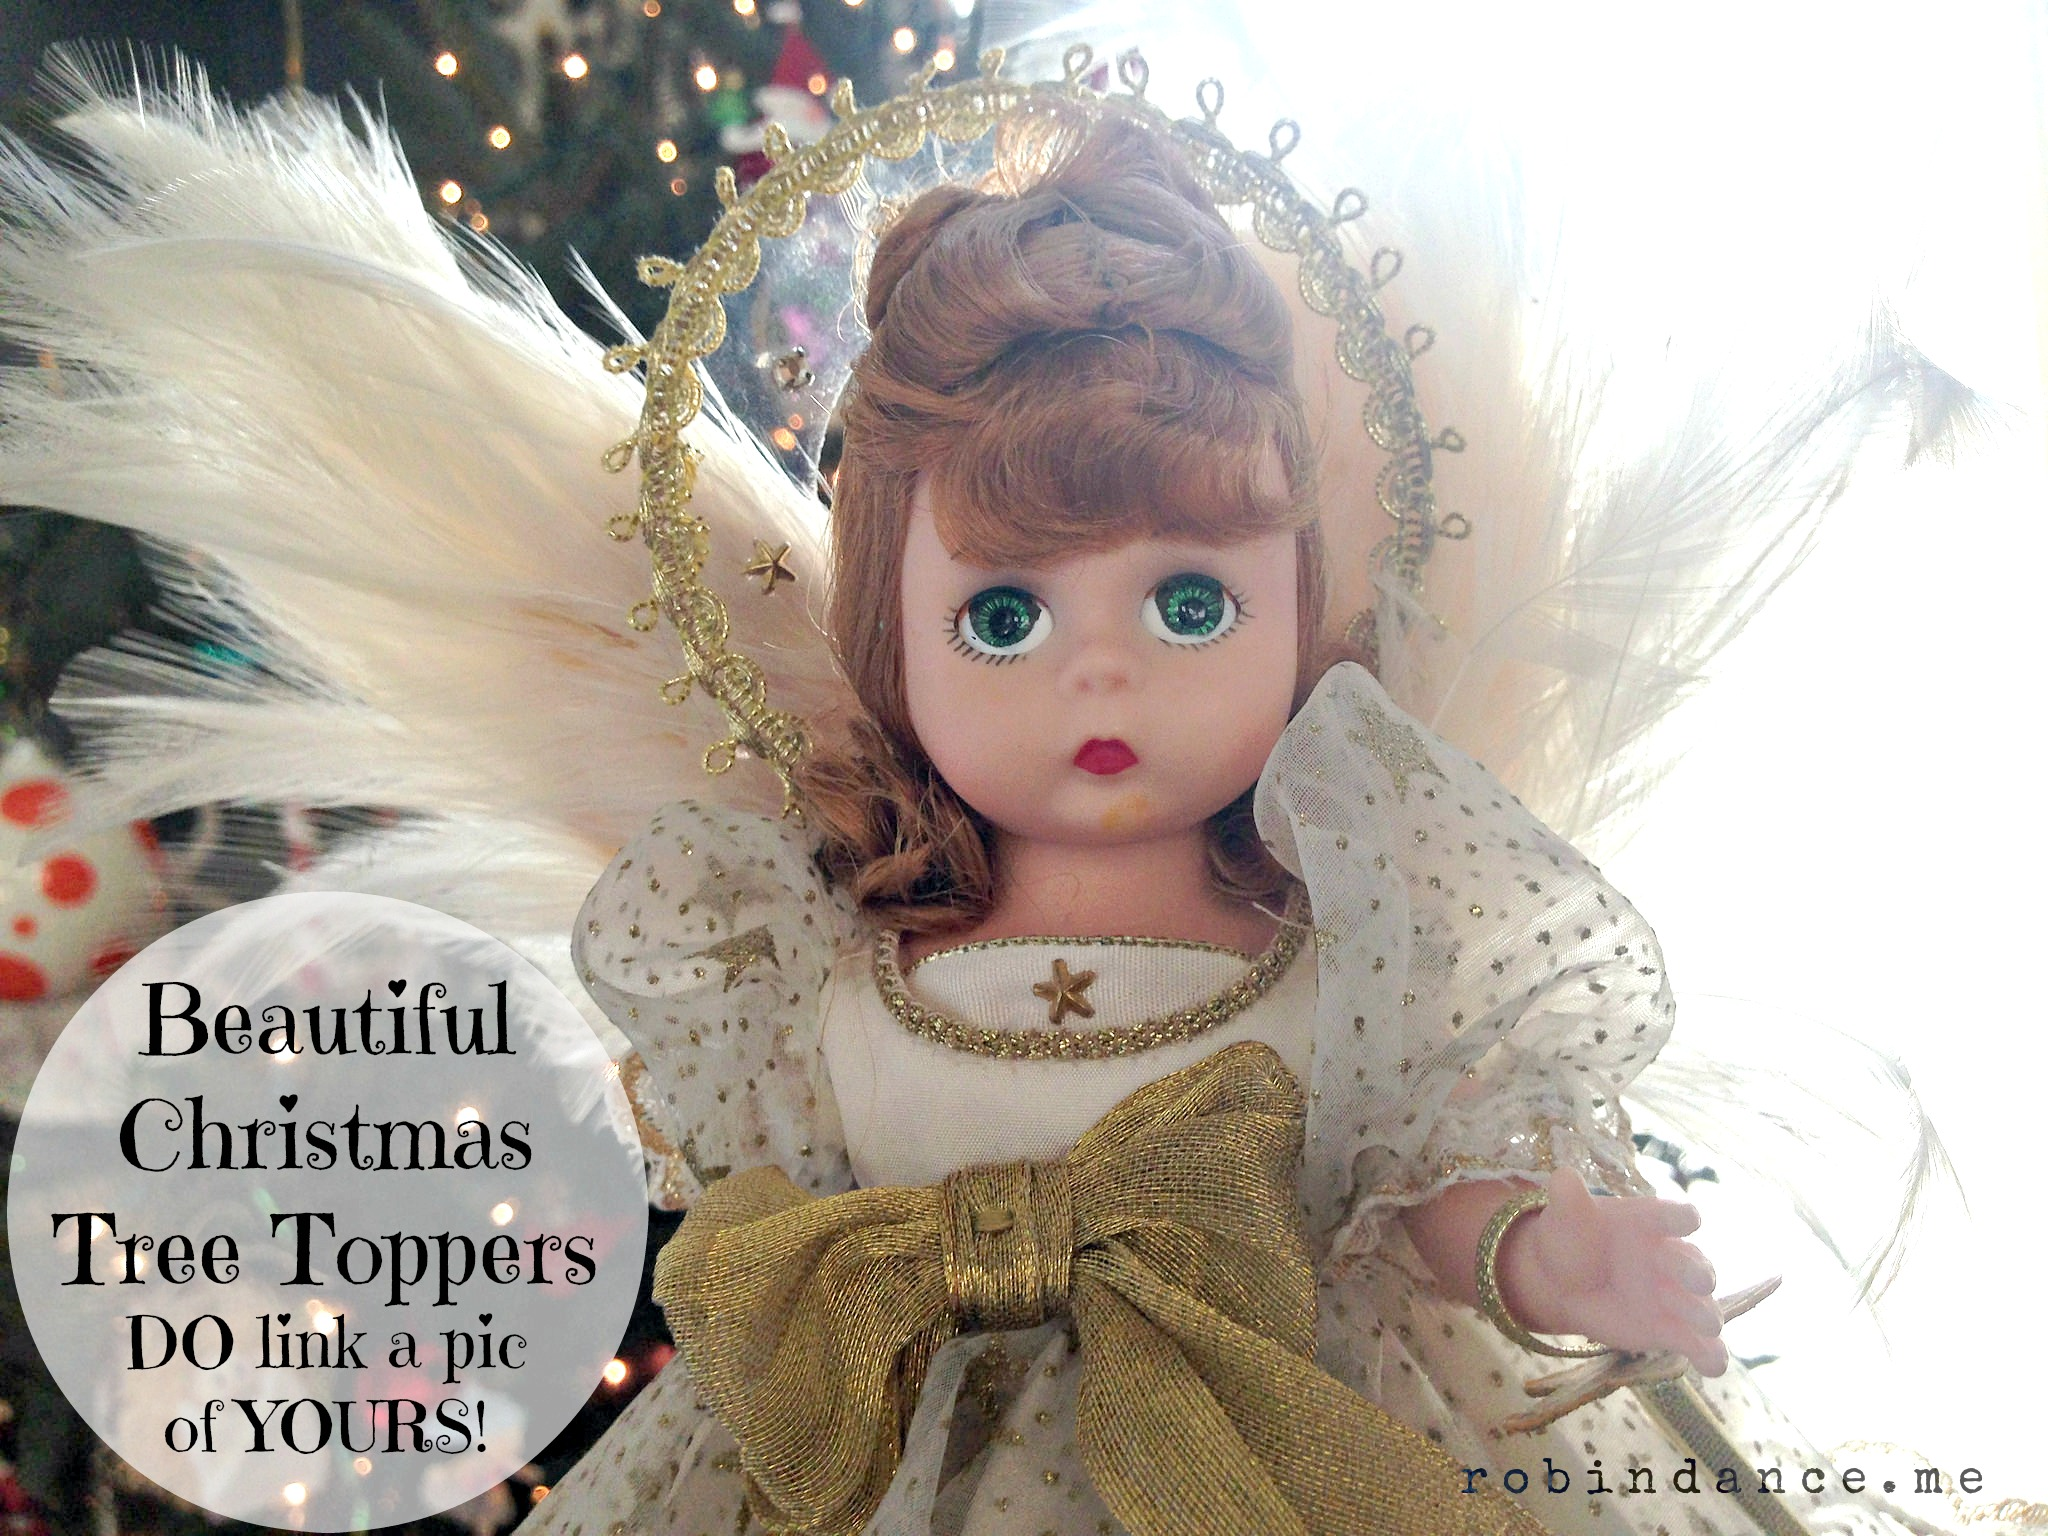 Christmas Tree Toppers – Does Yours Come With a Story? (Angel, Star, Bow – DO Tell!)